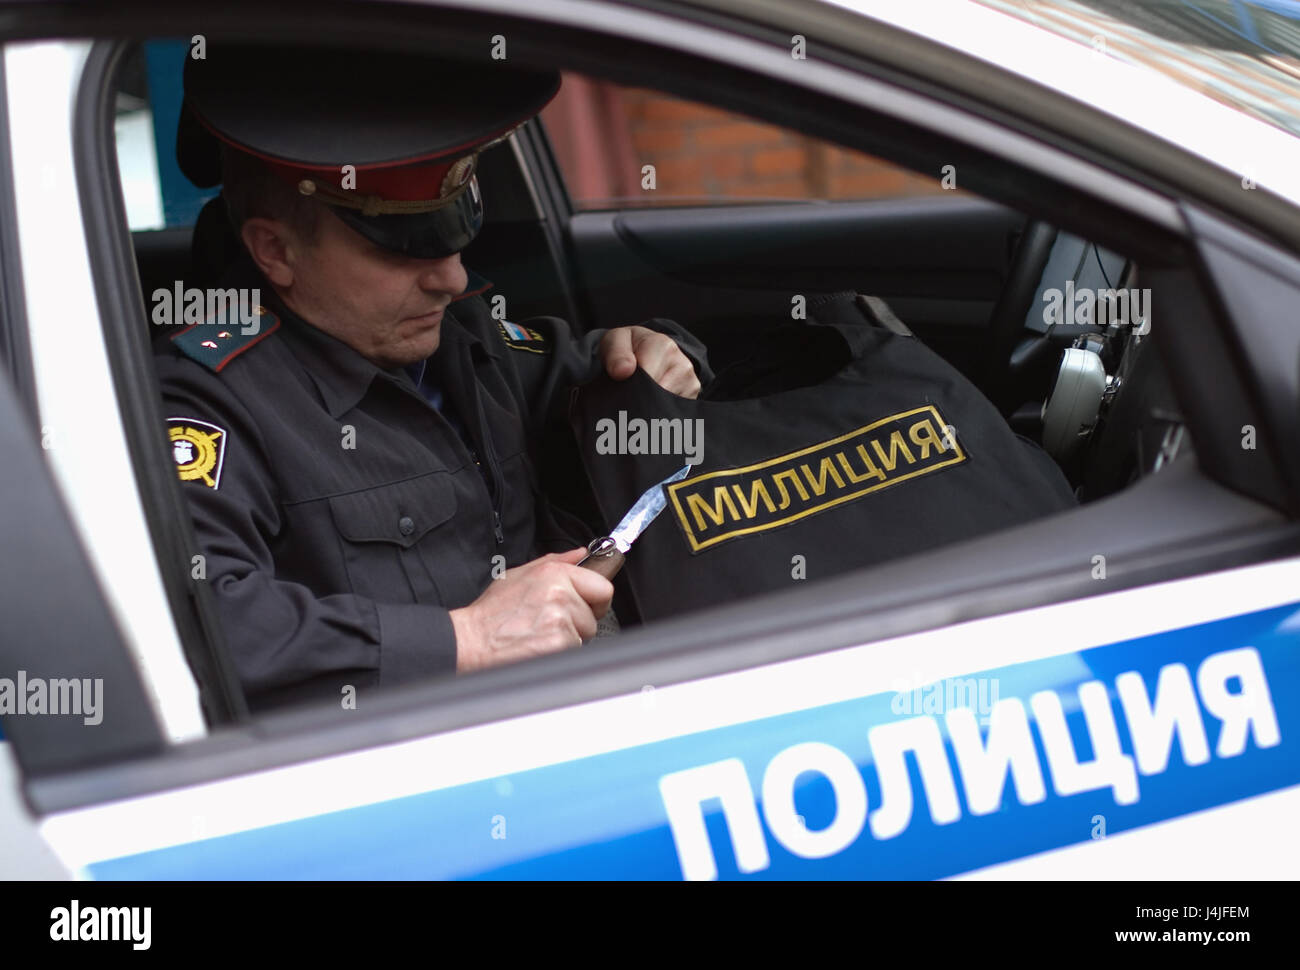 Moscow, Russia, May 19, 2012: A Russian policeman cuts off a 'police' badge from bulletproof vest. - Stock Image